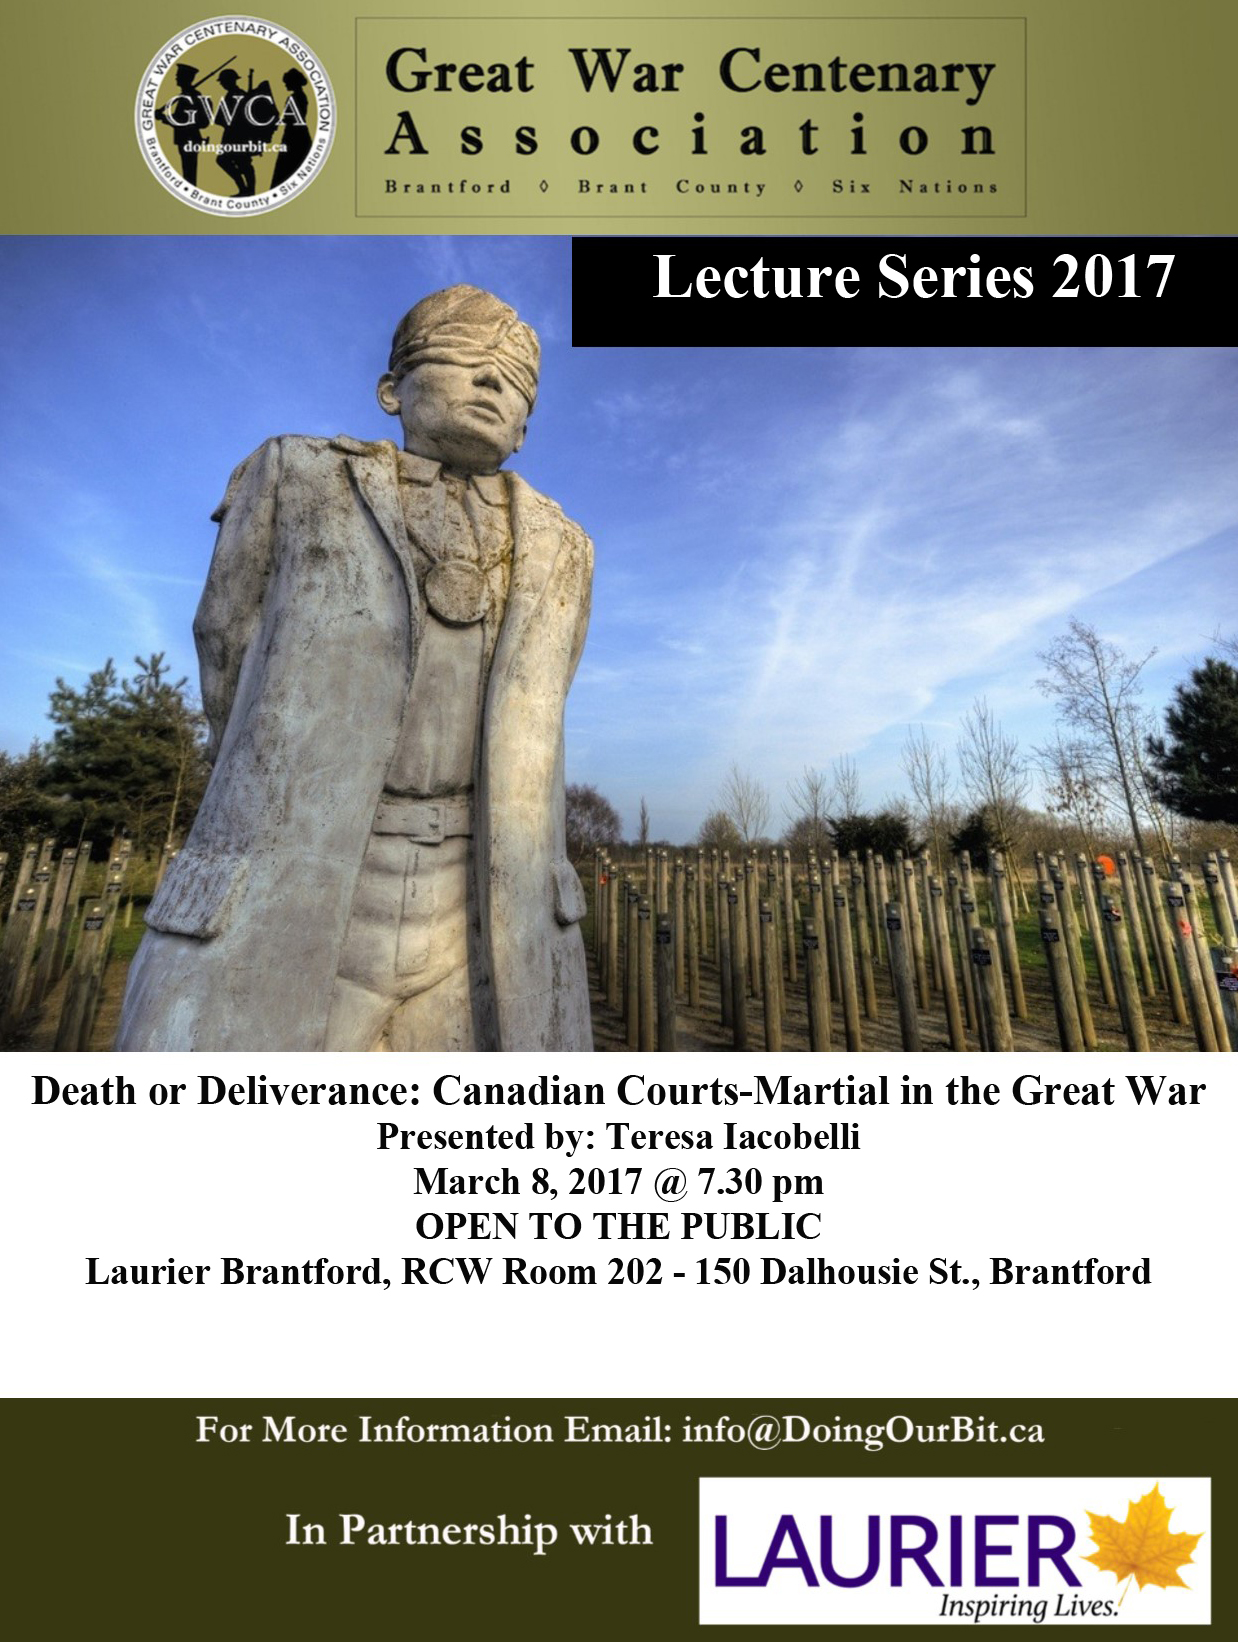 Teresa Iacobelli - Death or Deliverance, Canadian Courts-Martial during the First World War